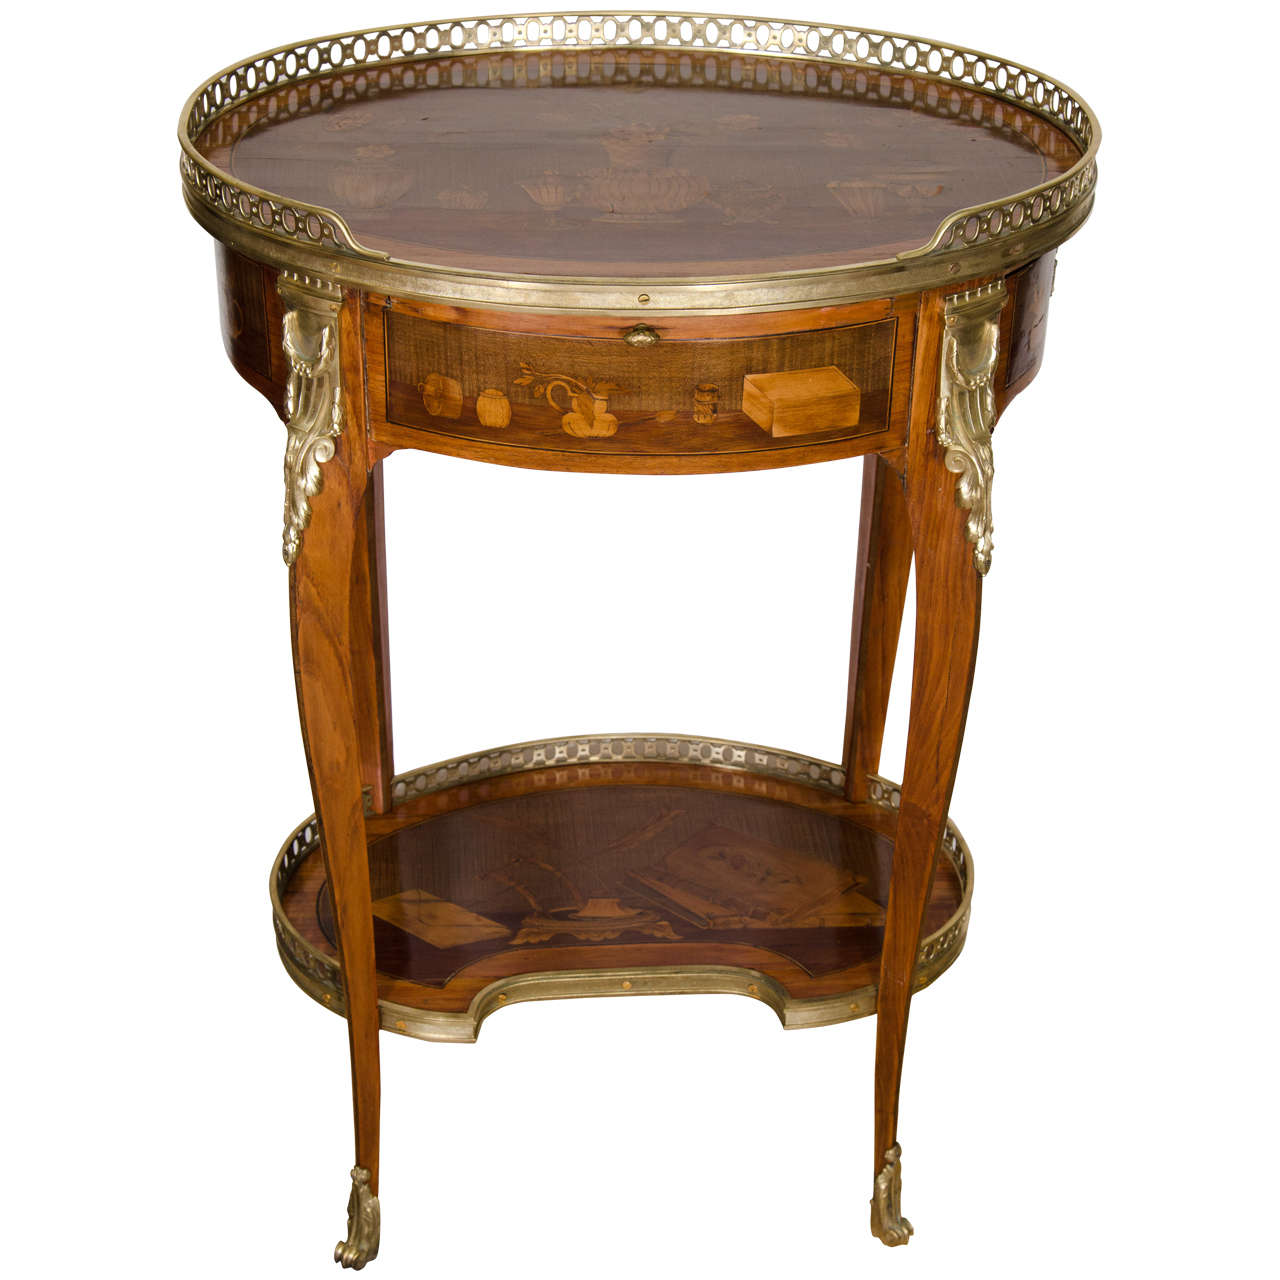 Louis xv oval side table for sale at 1stdibs - Table louis xv ...